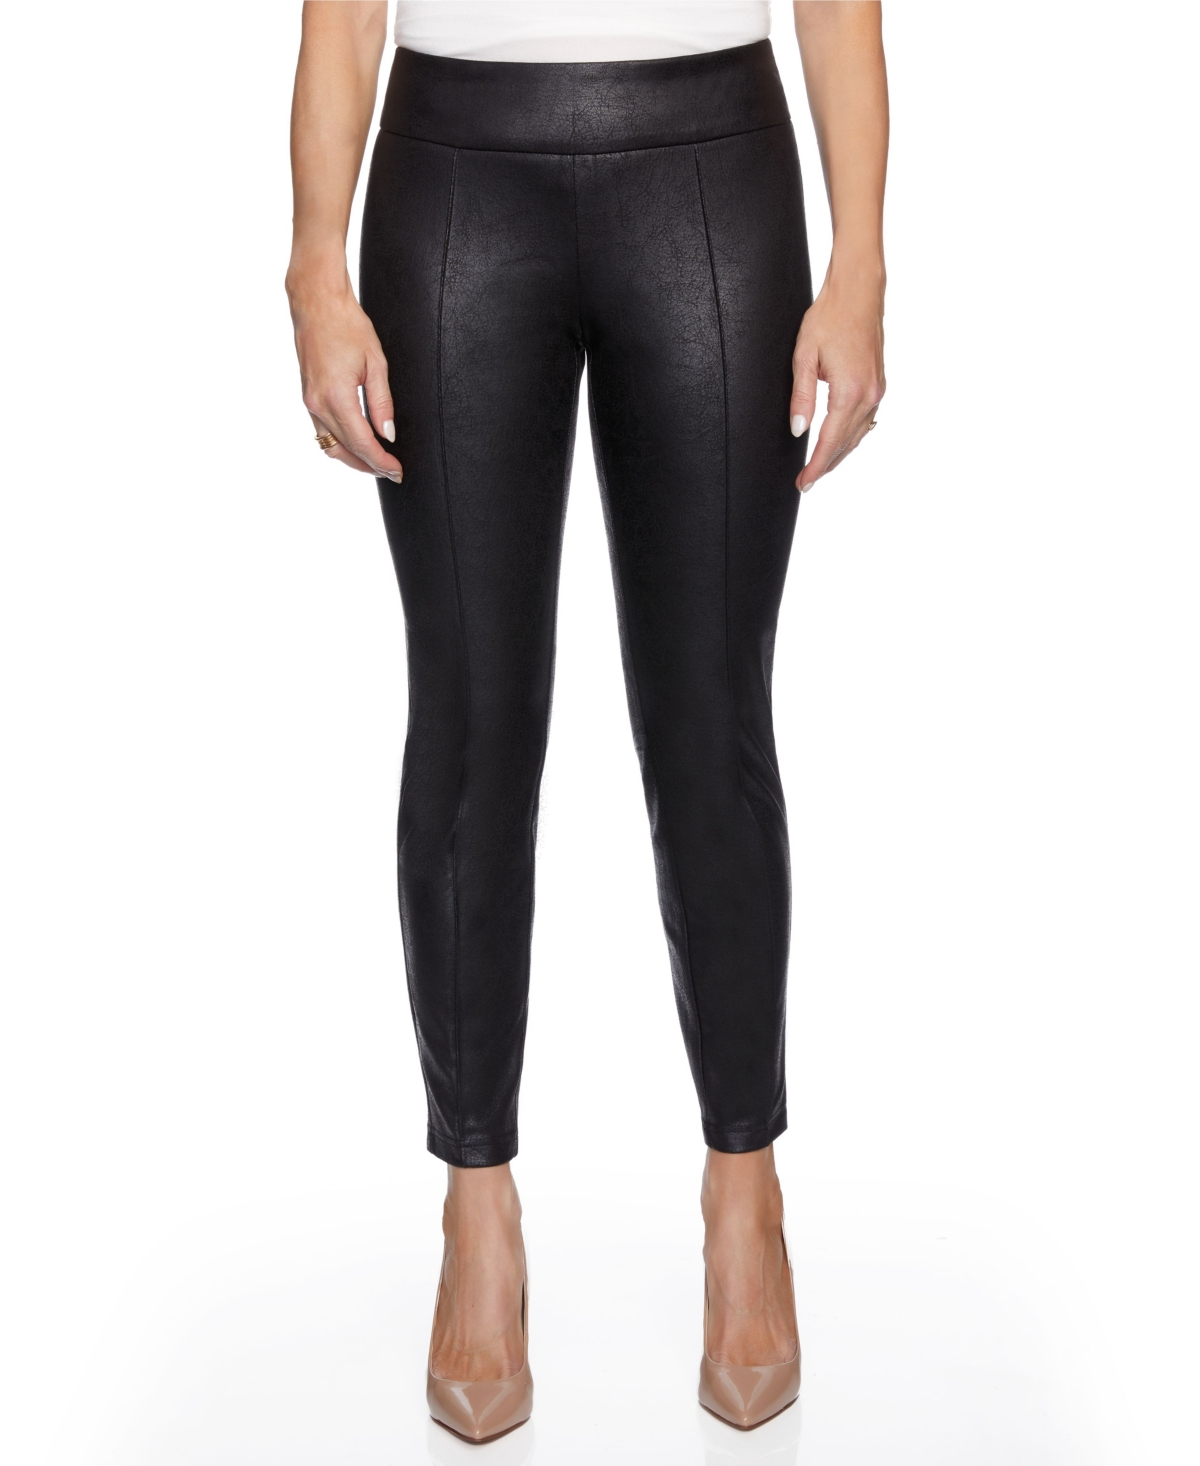 Women's Skinny with Embossed Fabric Pants